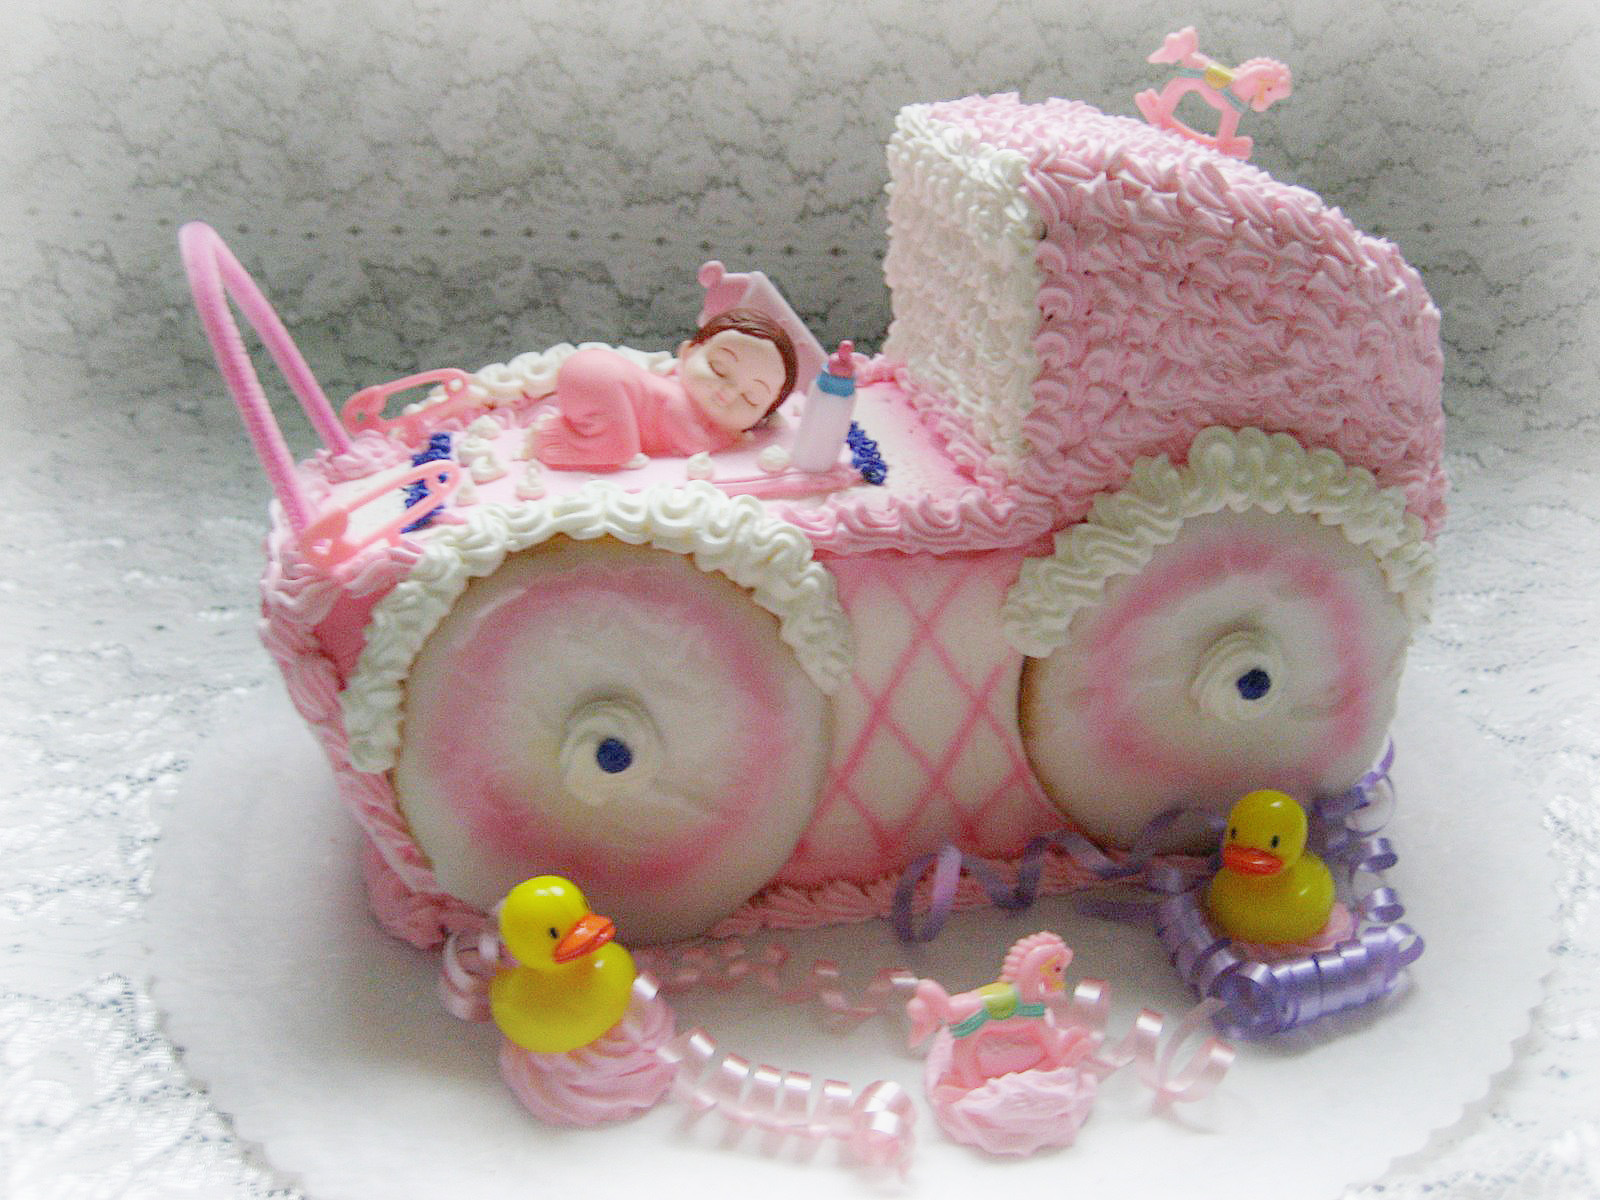 walmart bakery baby shower cakes uetmy7q jpg pictures to pin on